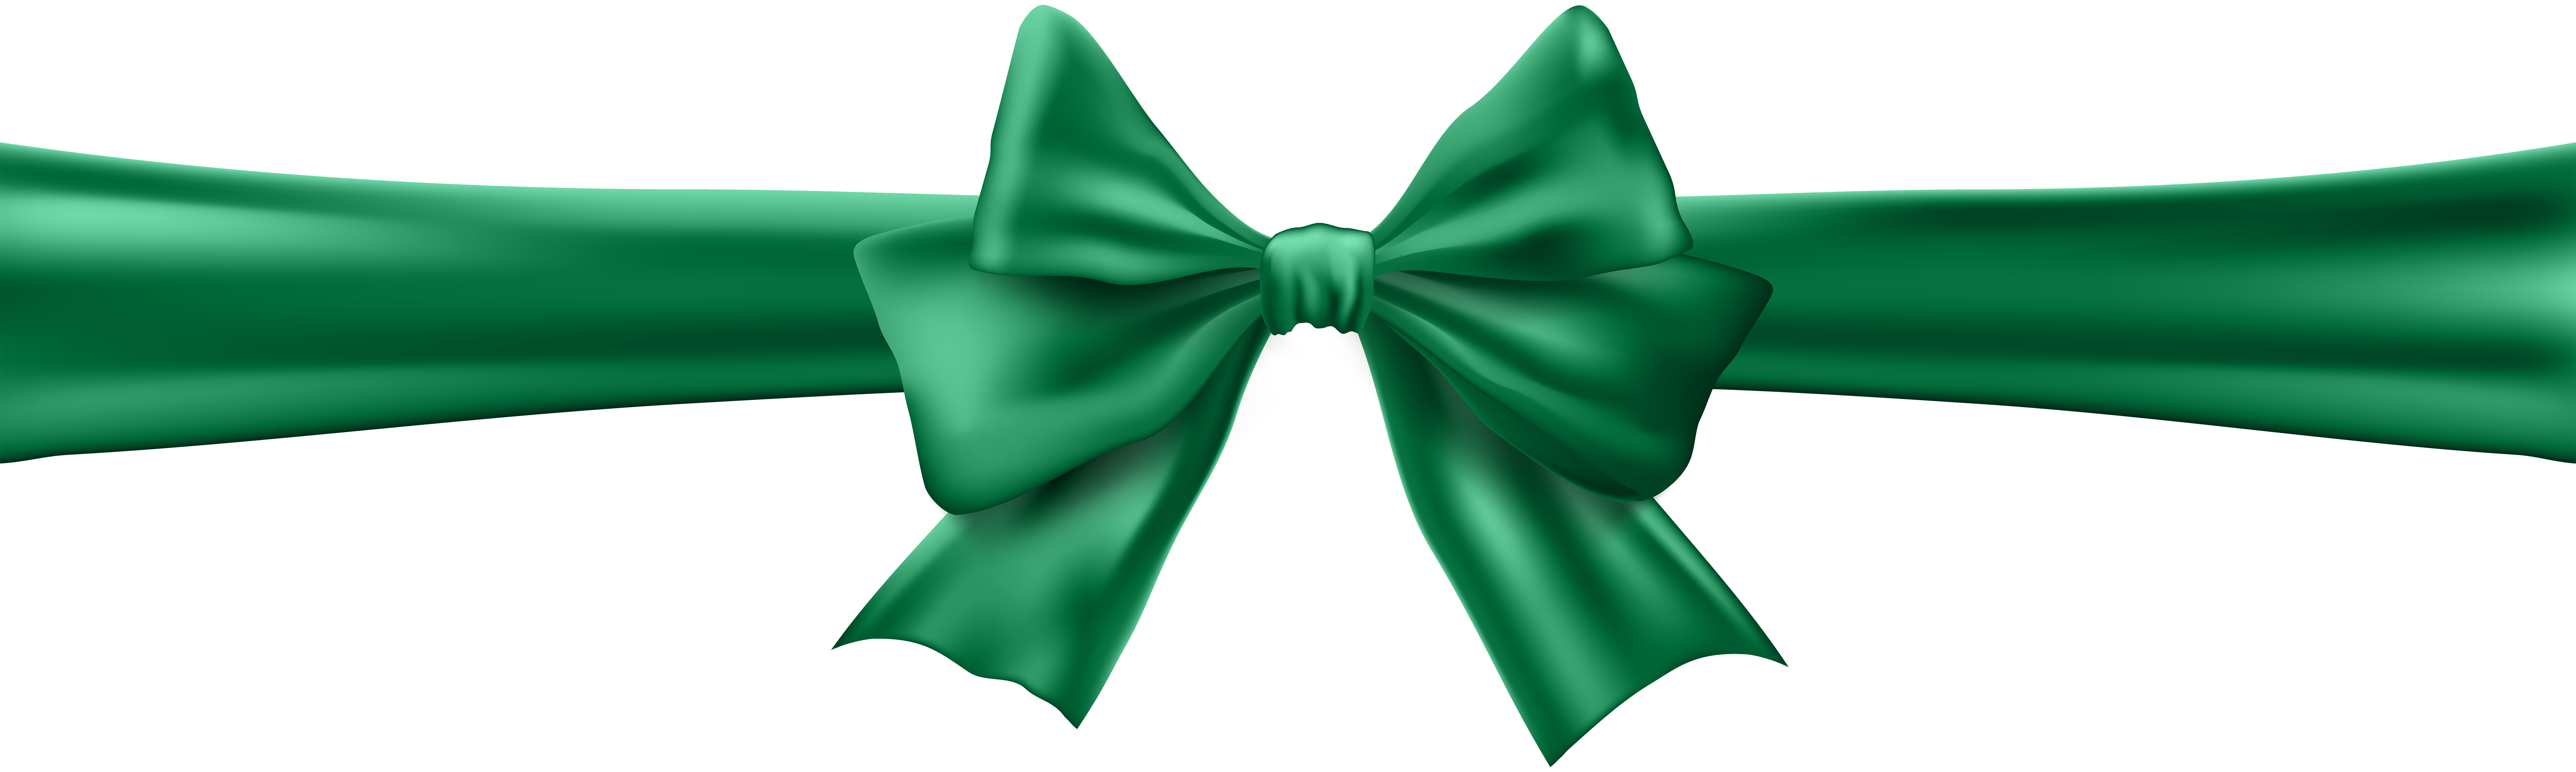 Green ribbon bow png. With clip art image